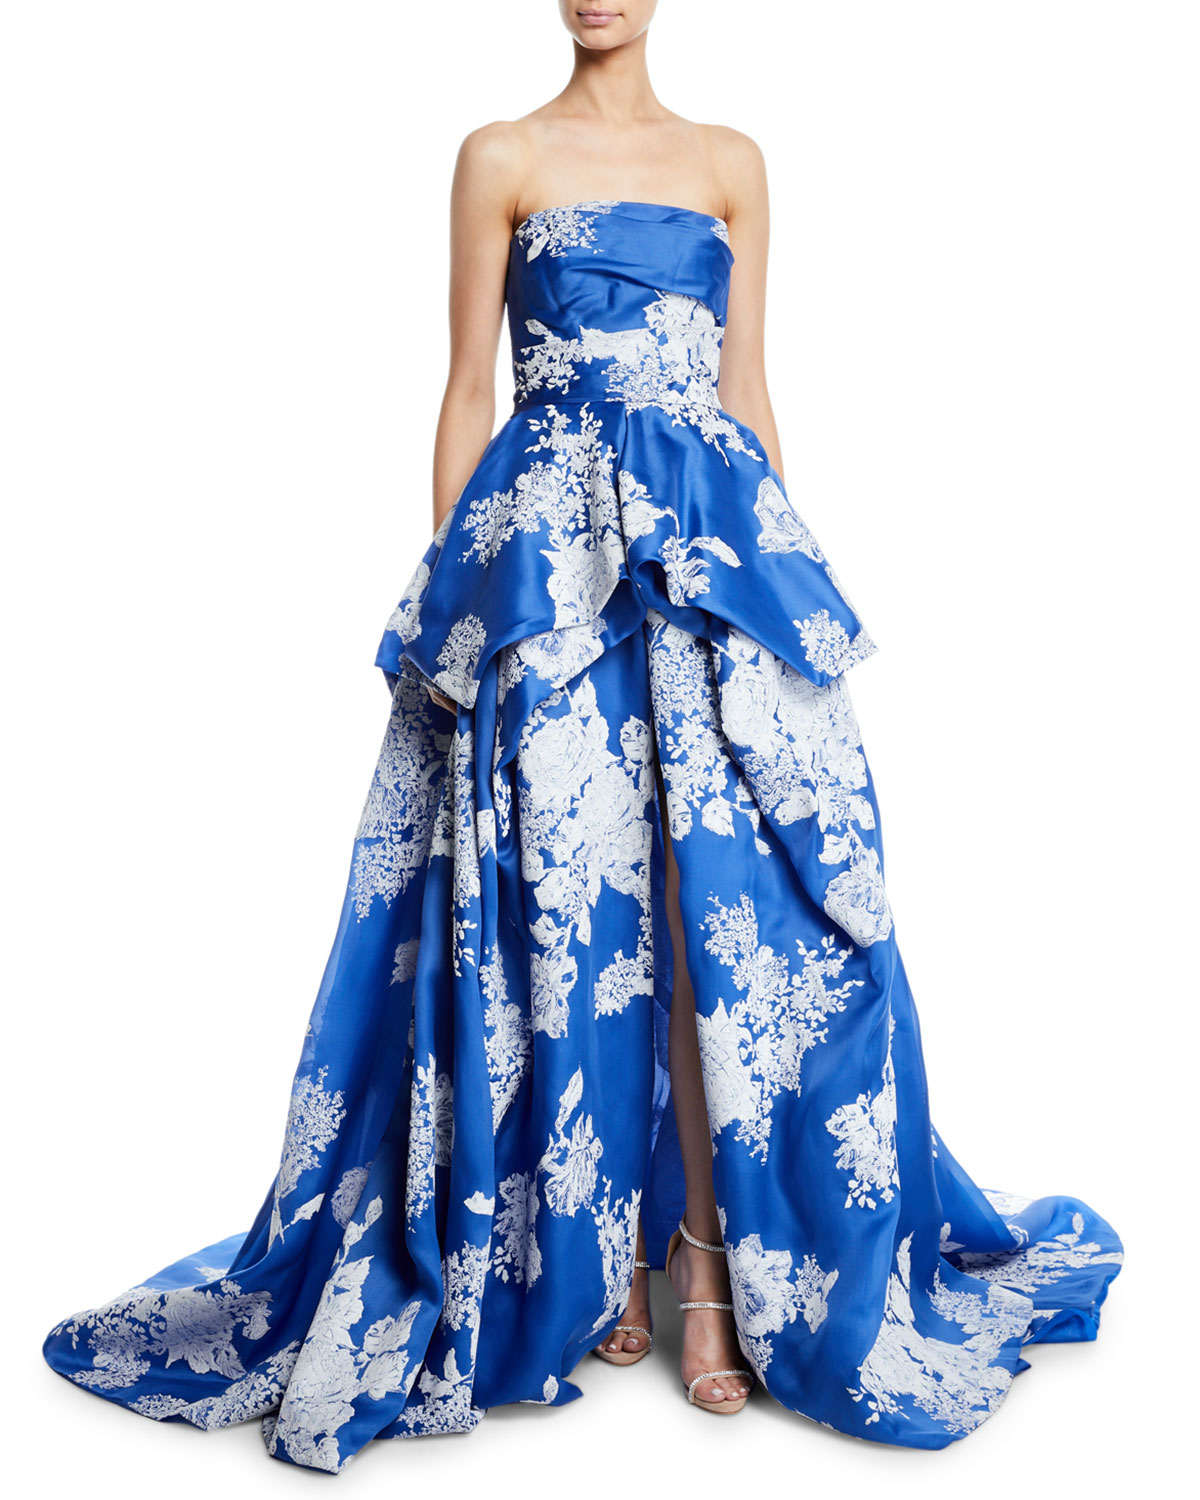 0284d7e404ee1 Monique Lhuillier Strapless Hand-Tufted Floral-Print Organza Ball Gown In  Blue/White